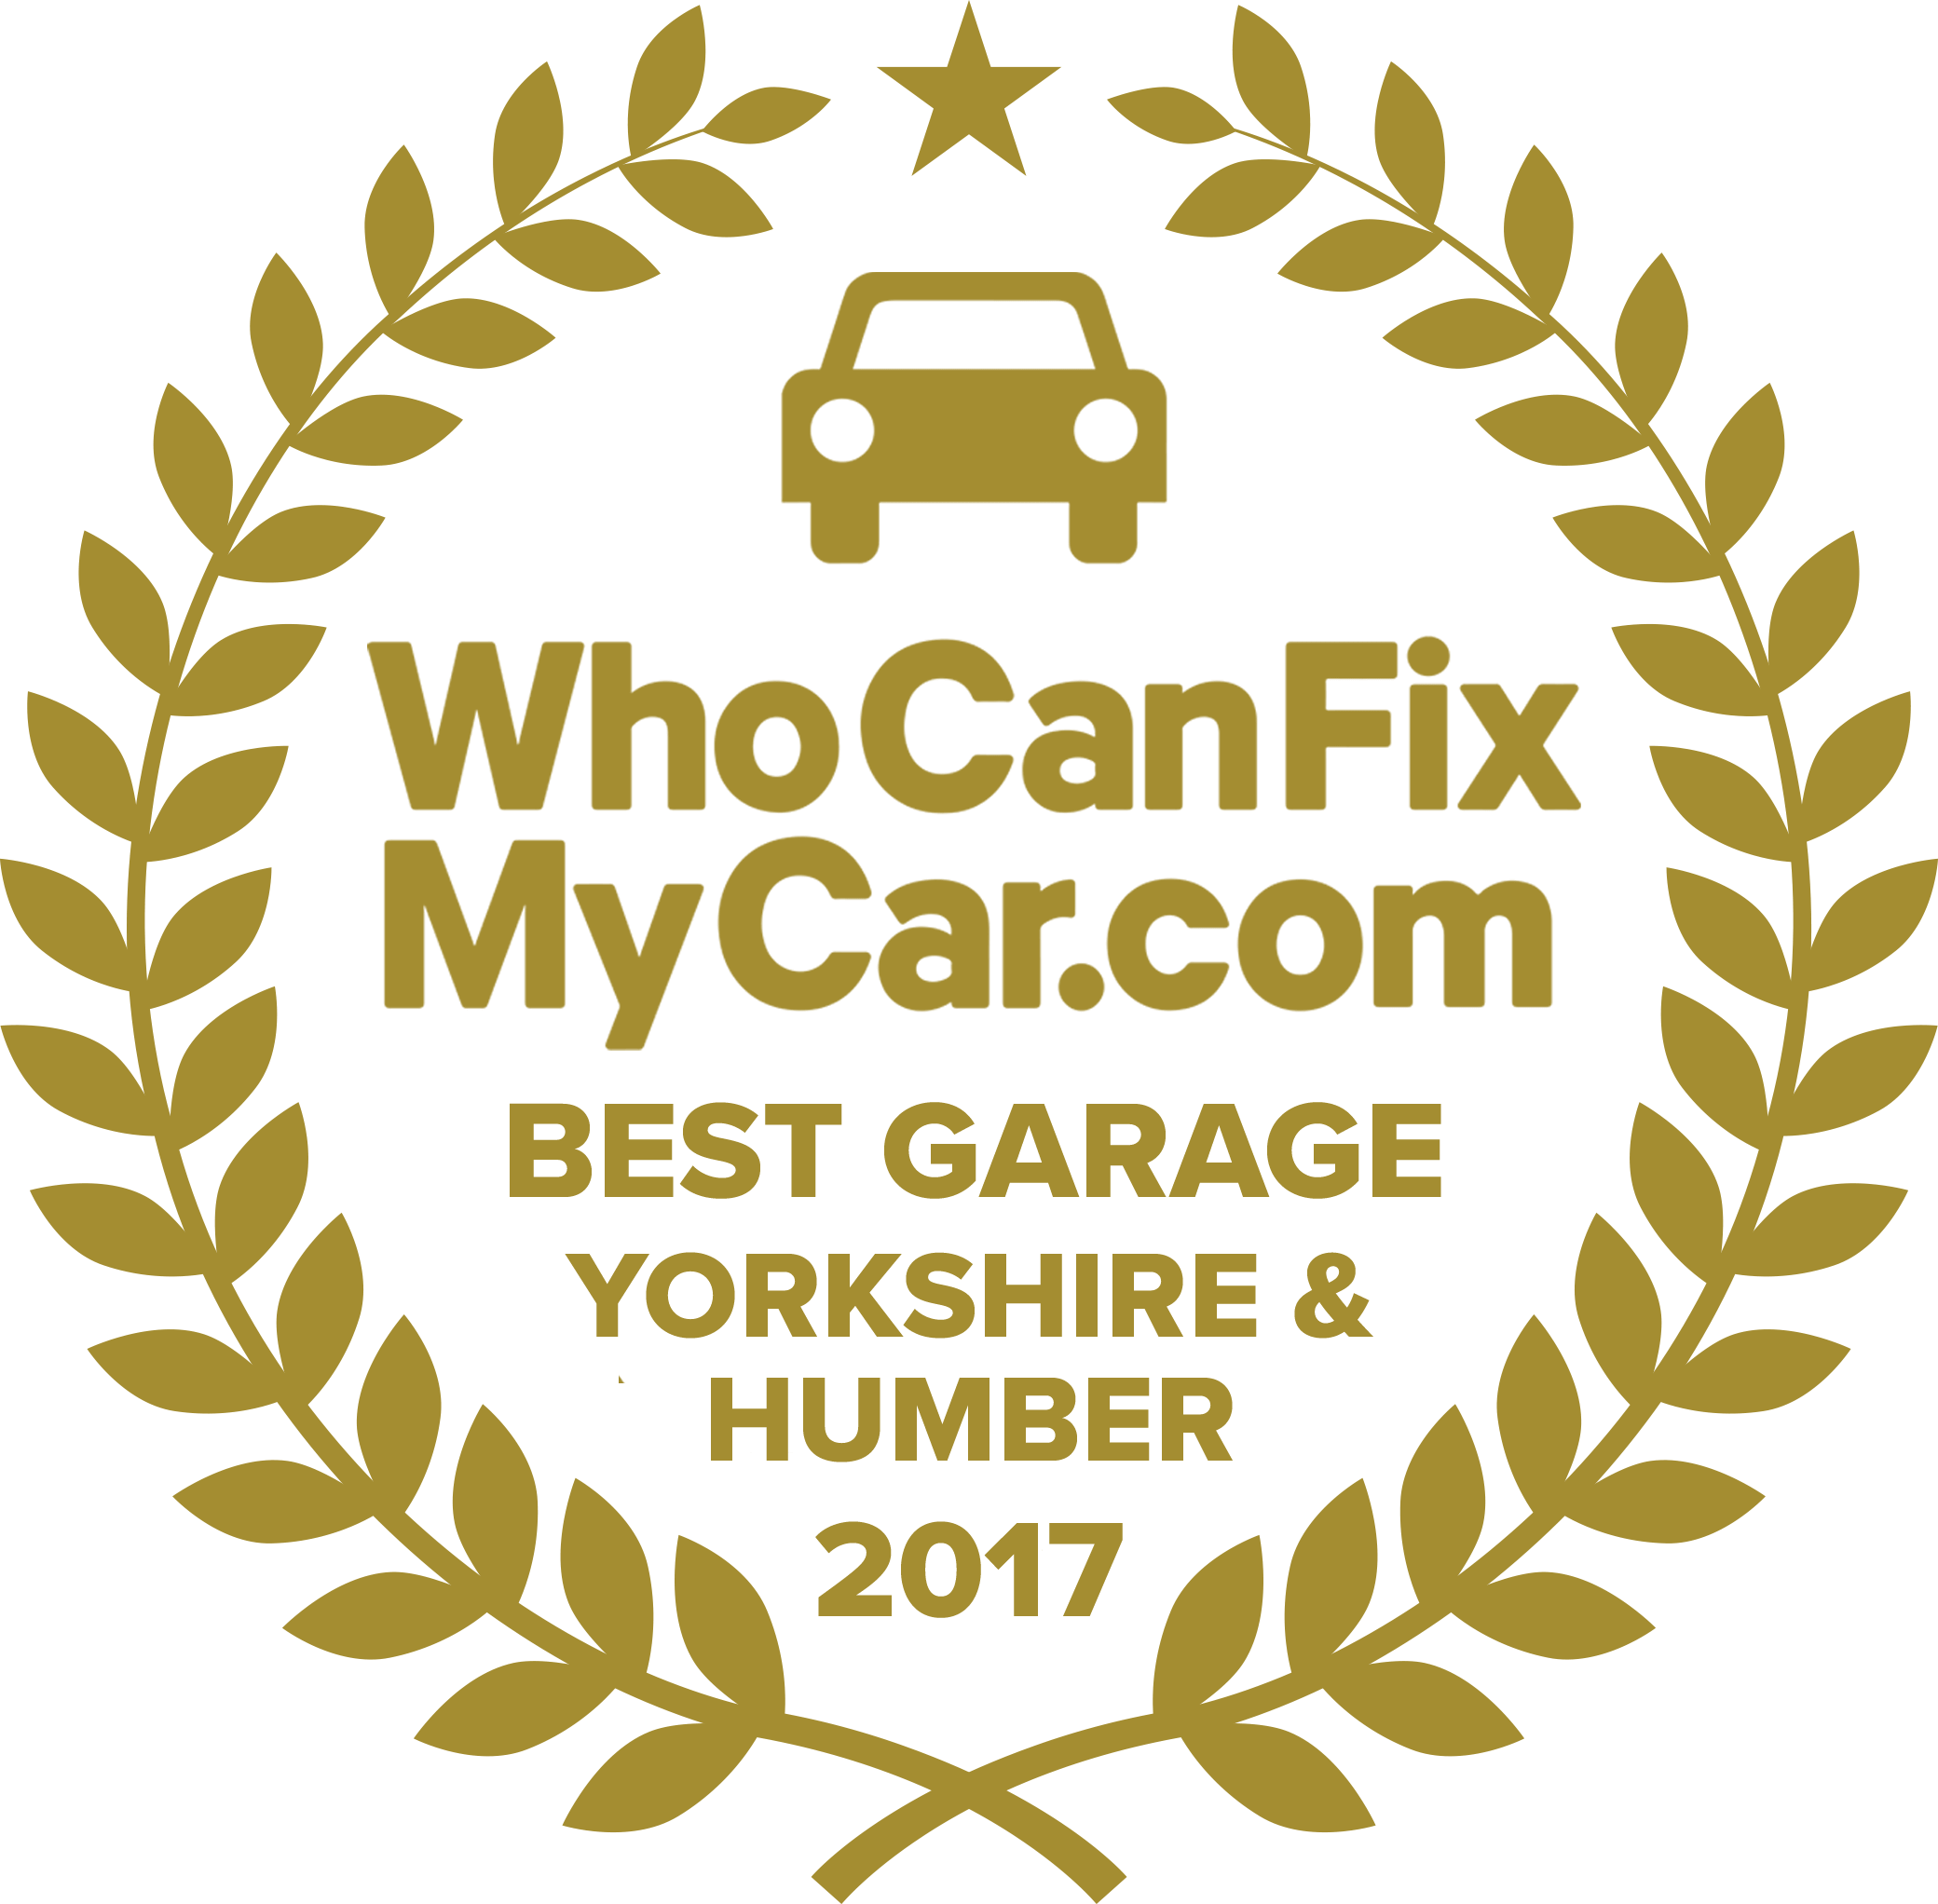 Best Garage 2017 - Yorkshire & Humber